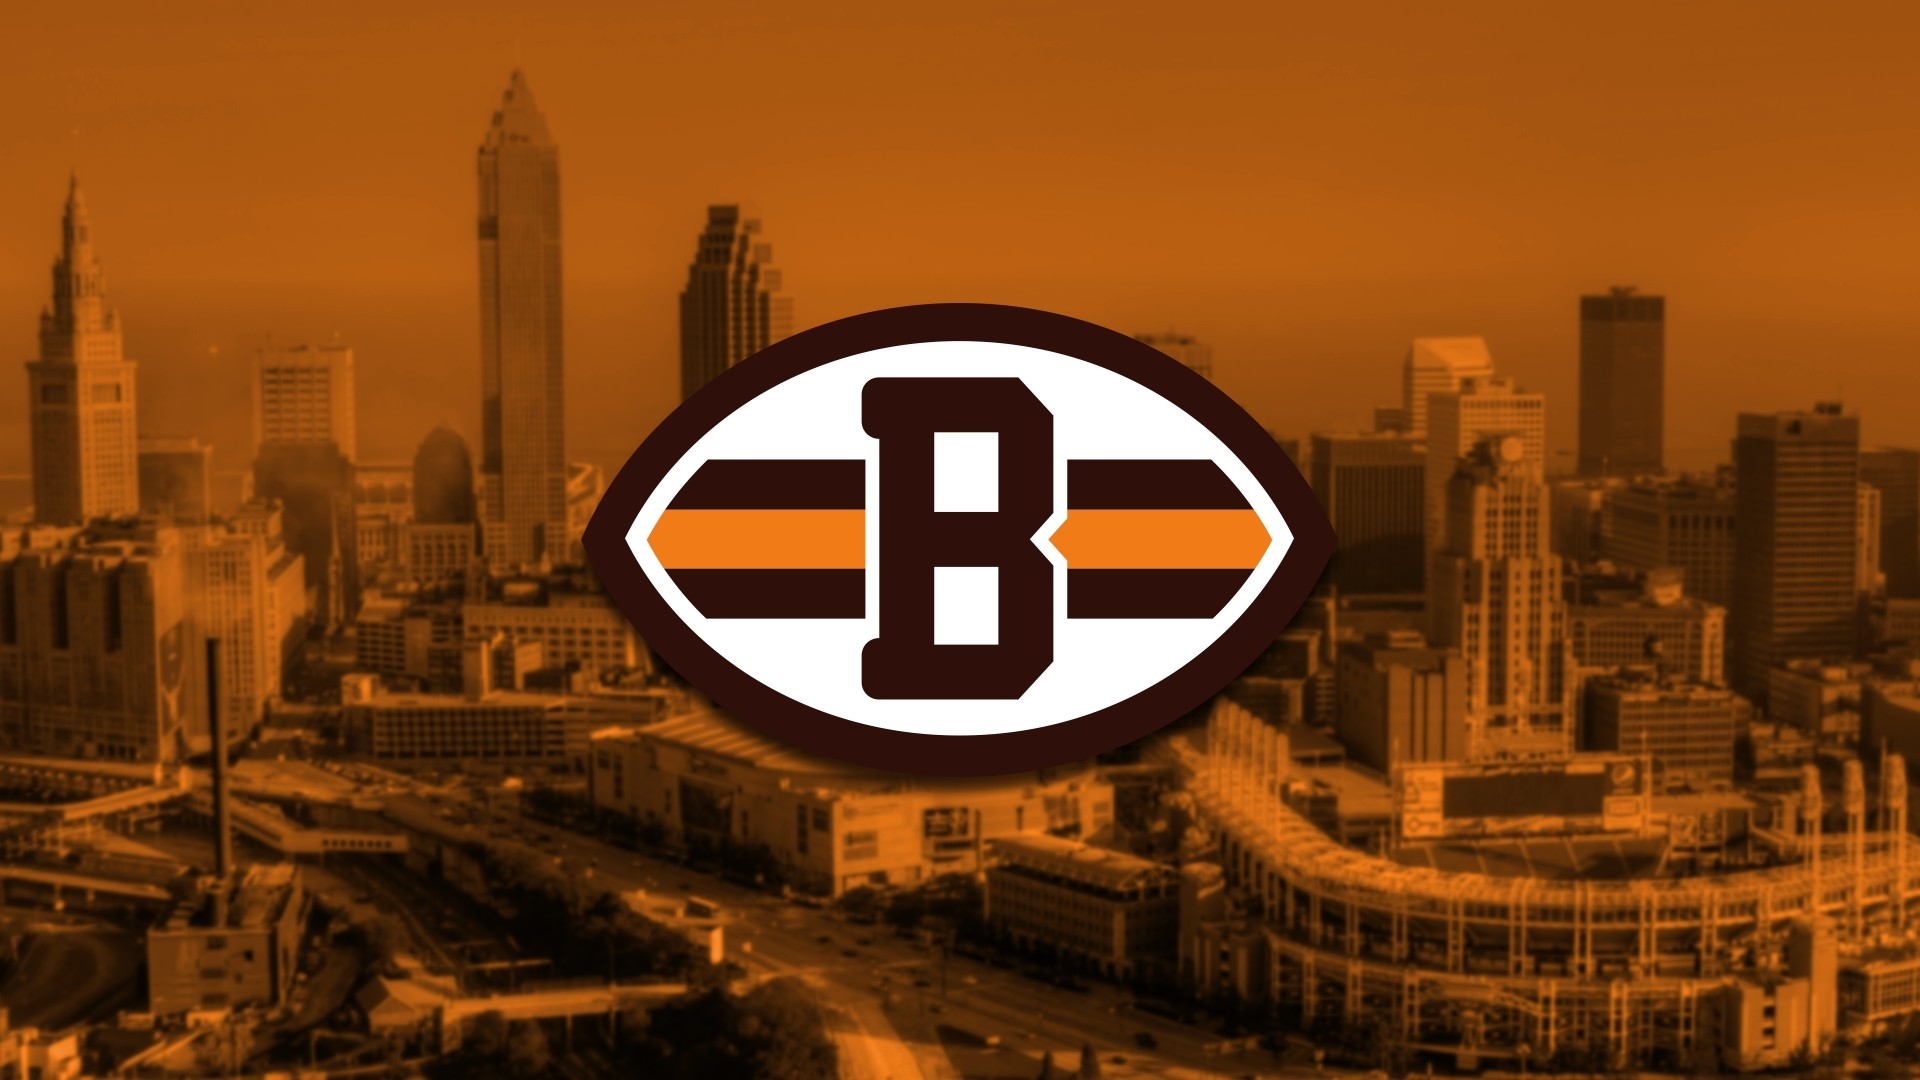 Cleveland Browns Wallpaper Picture hd